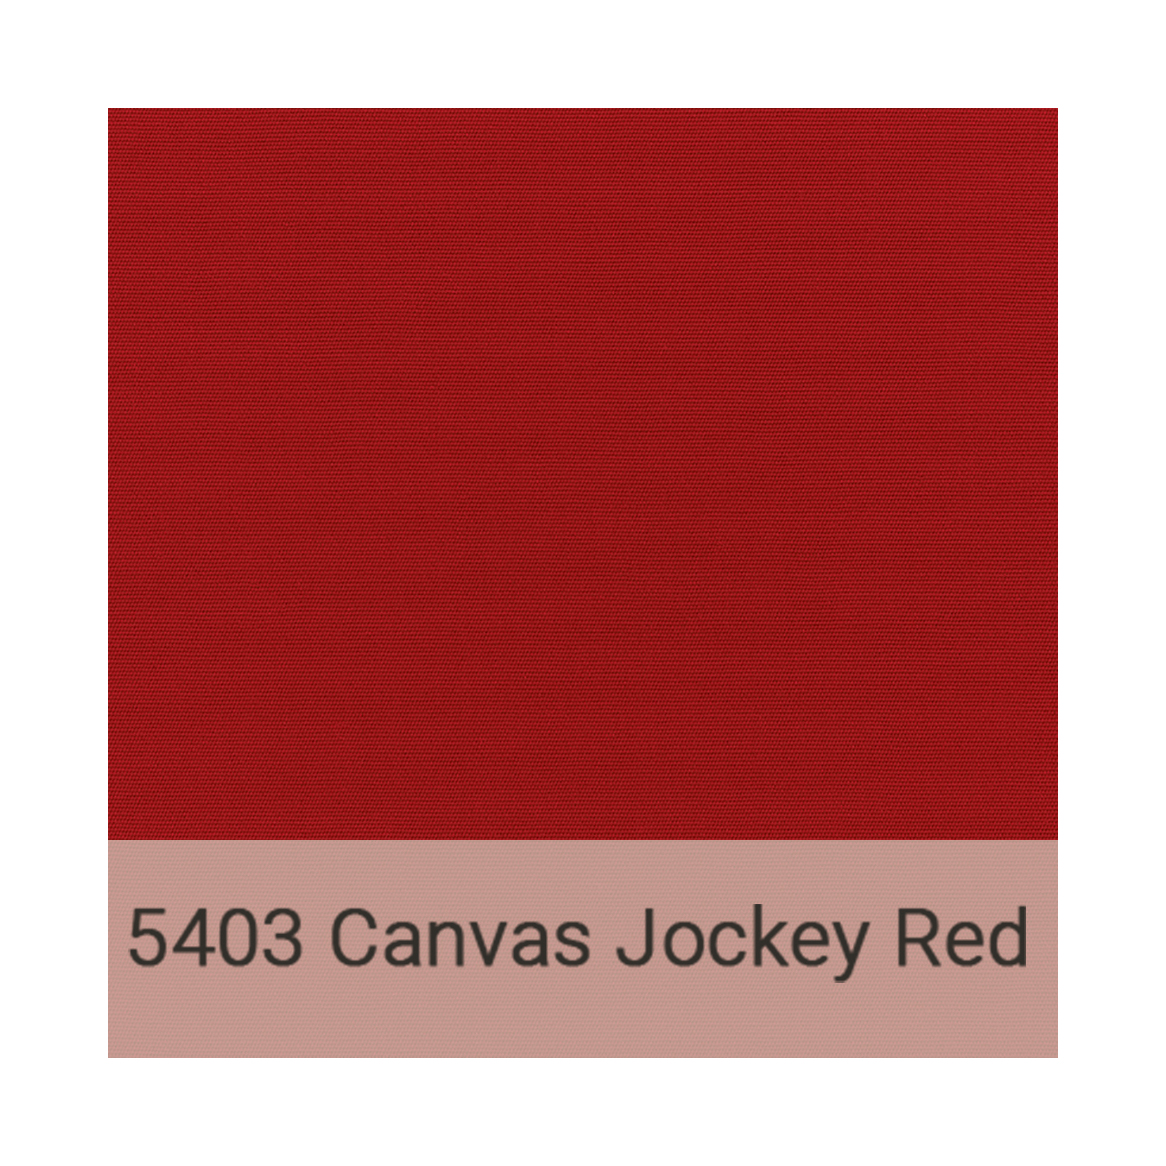 Kingston Casual Sunbrella gradeb-5403-canvas-jockey-red